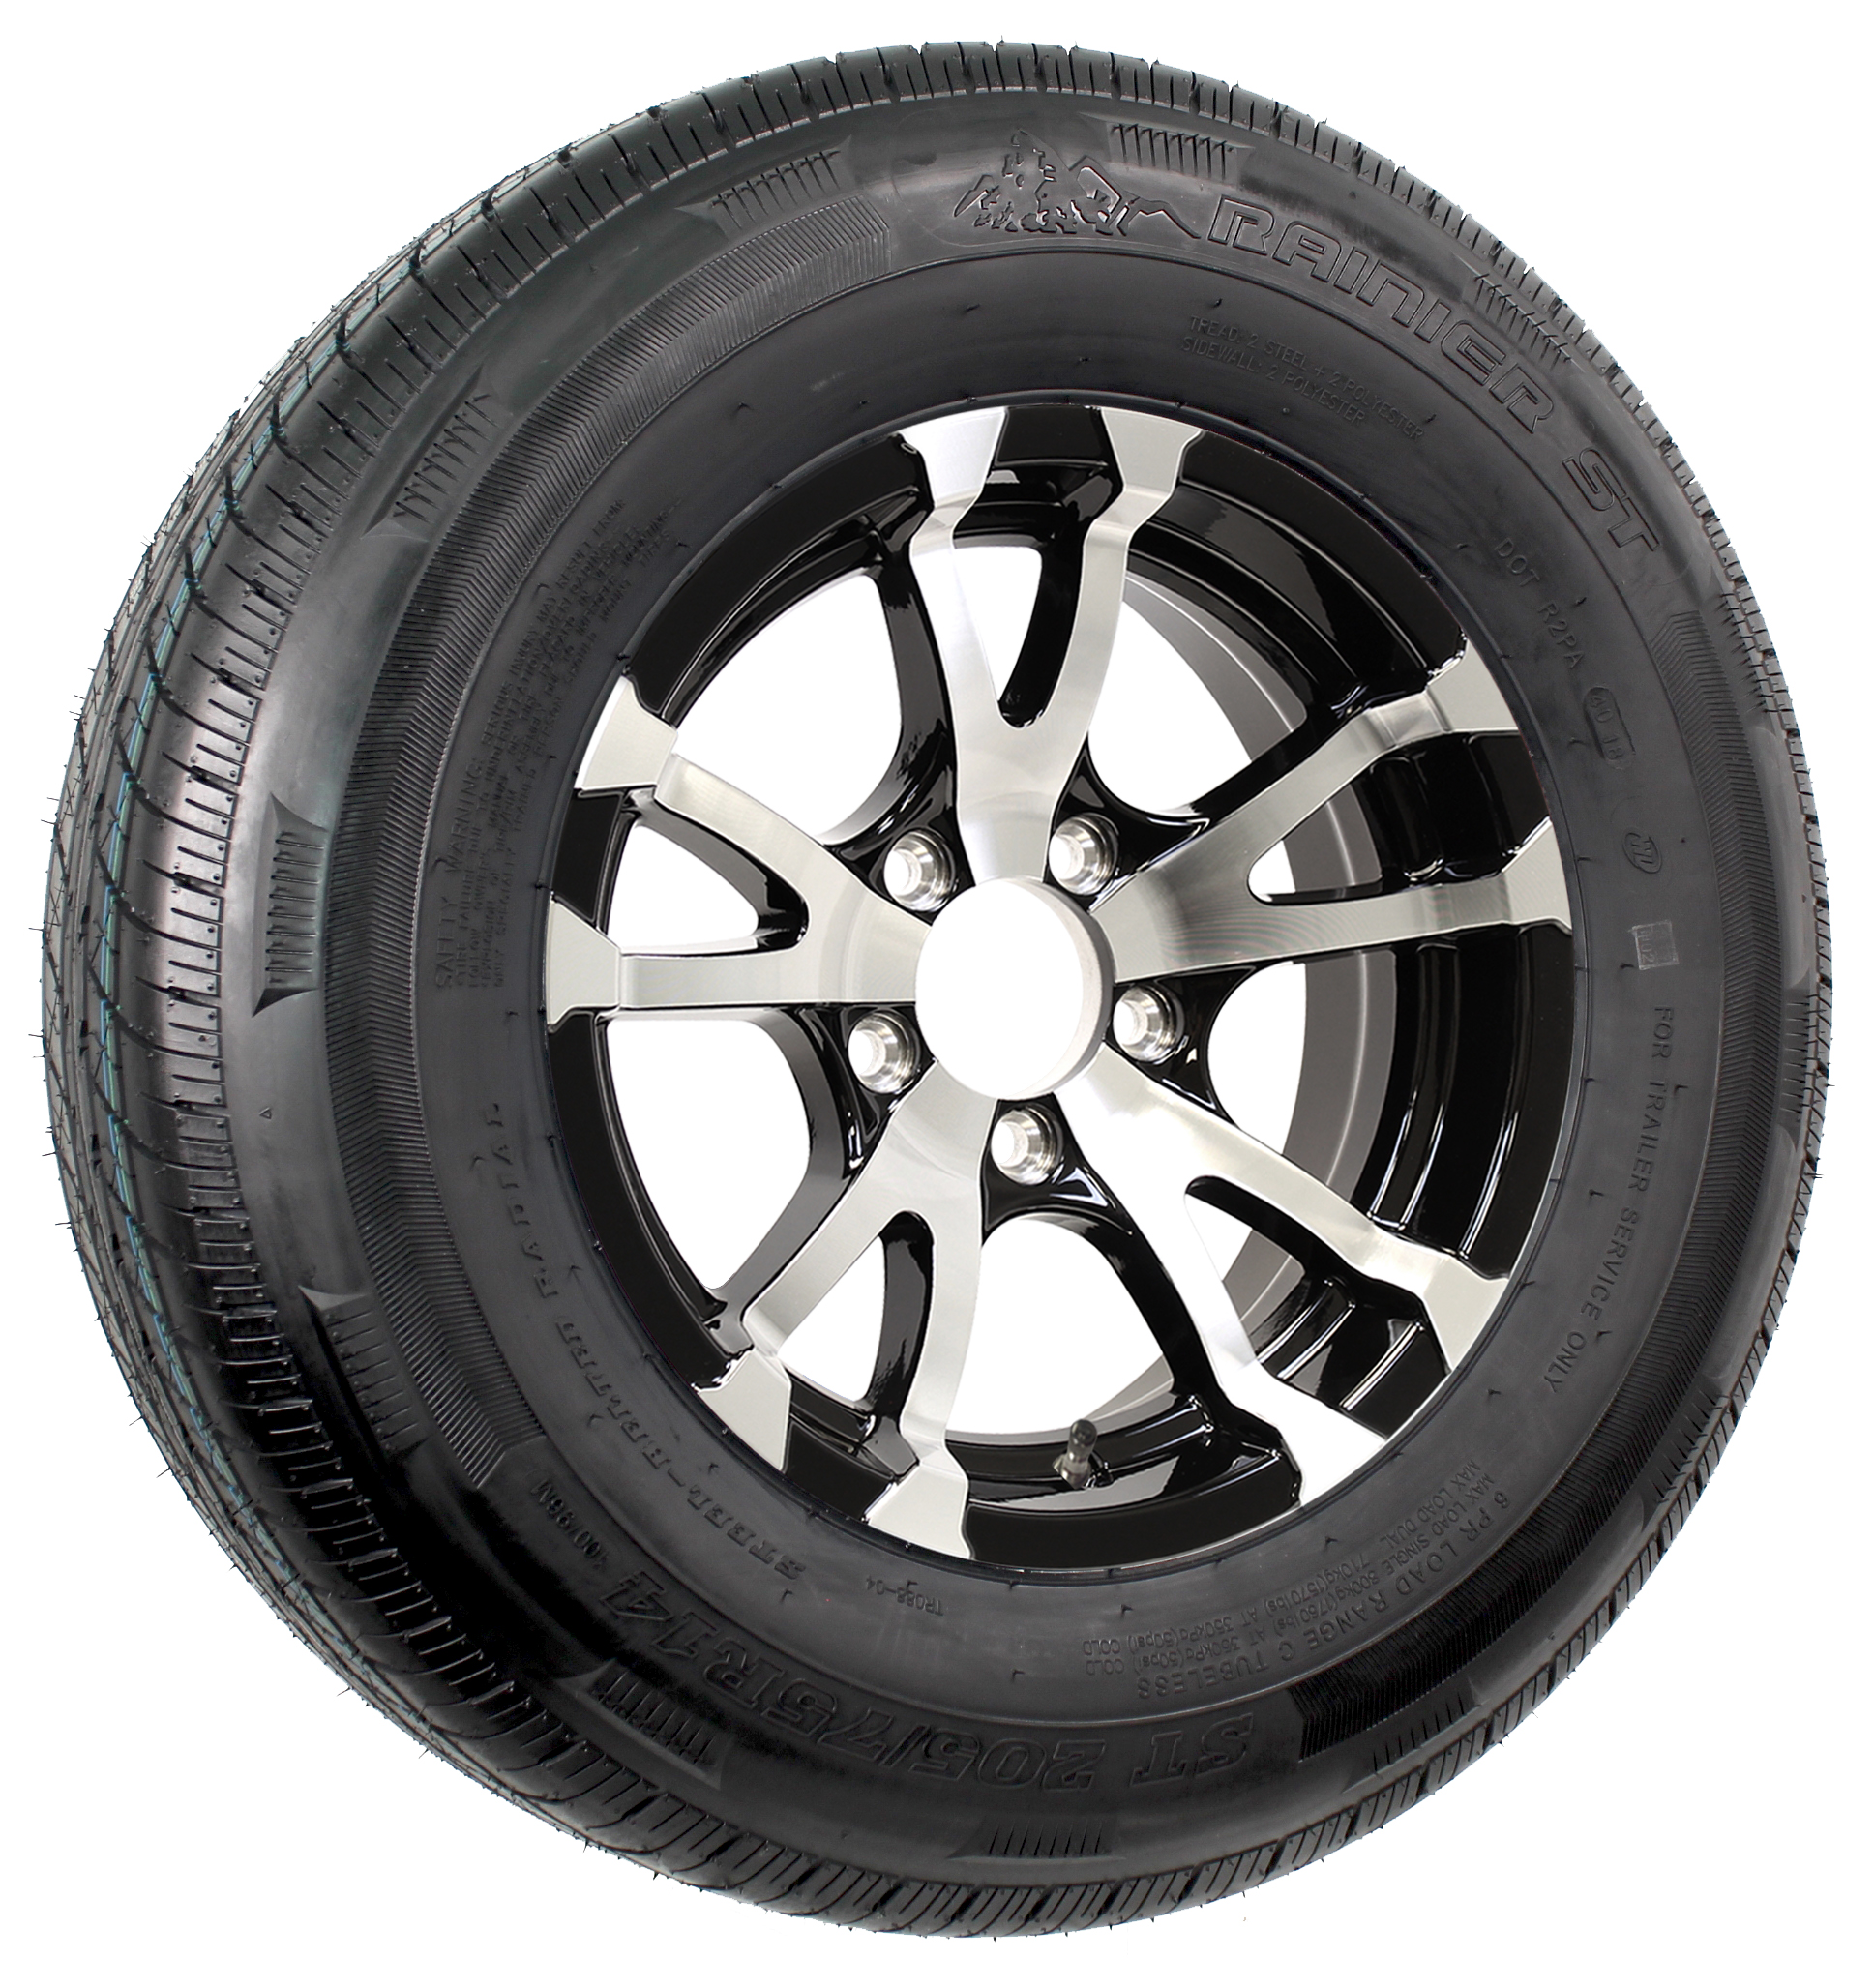 "Rainier ST205/75R14 LRD Radial Tire on 14"" 5-Lug Avalanche Black Aluminum Assembly Image"